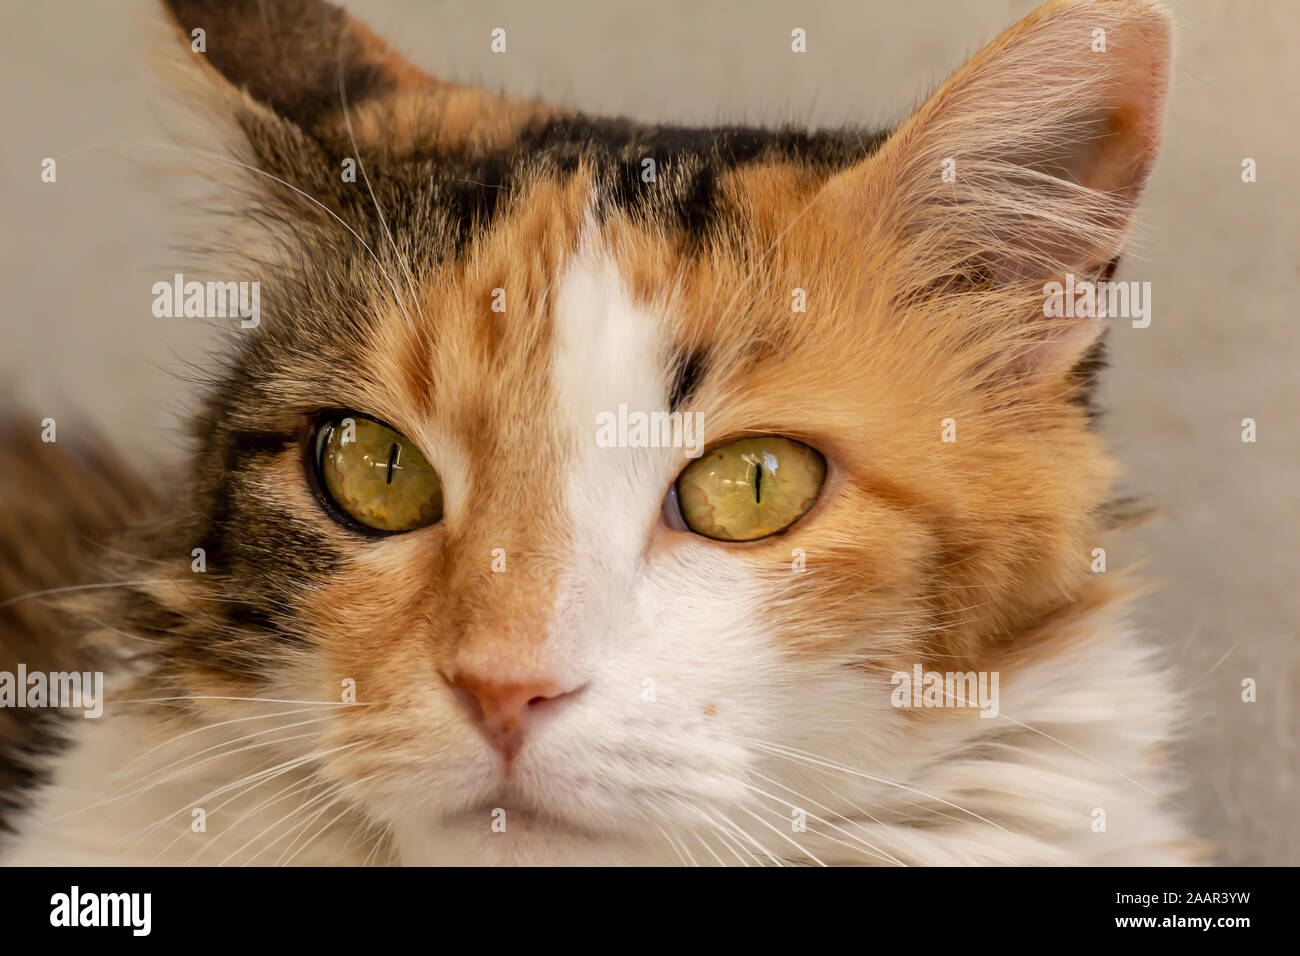 Close-up street cat portrait of European Shorthair breed Stock Photo